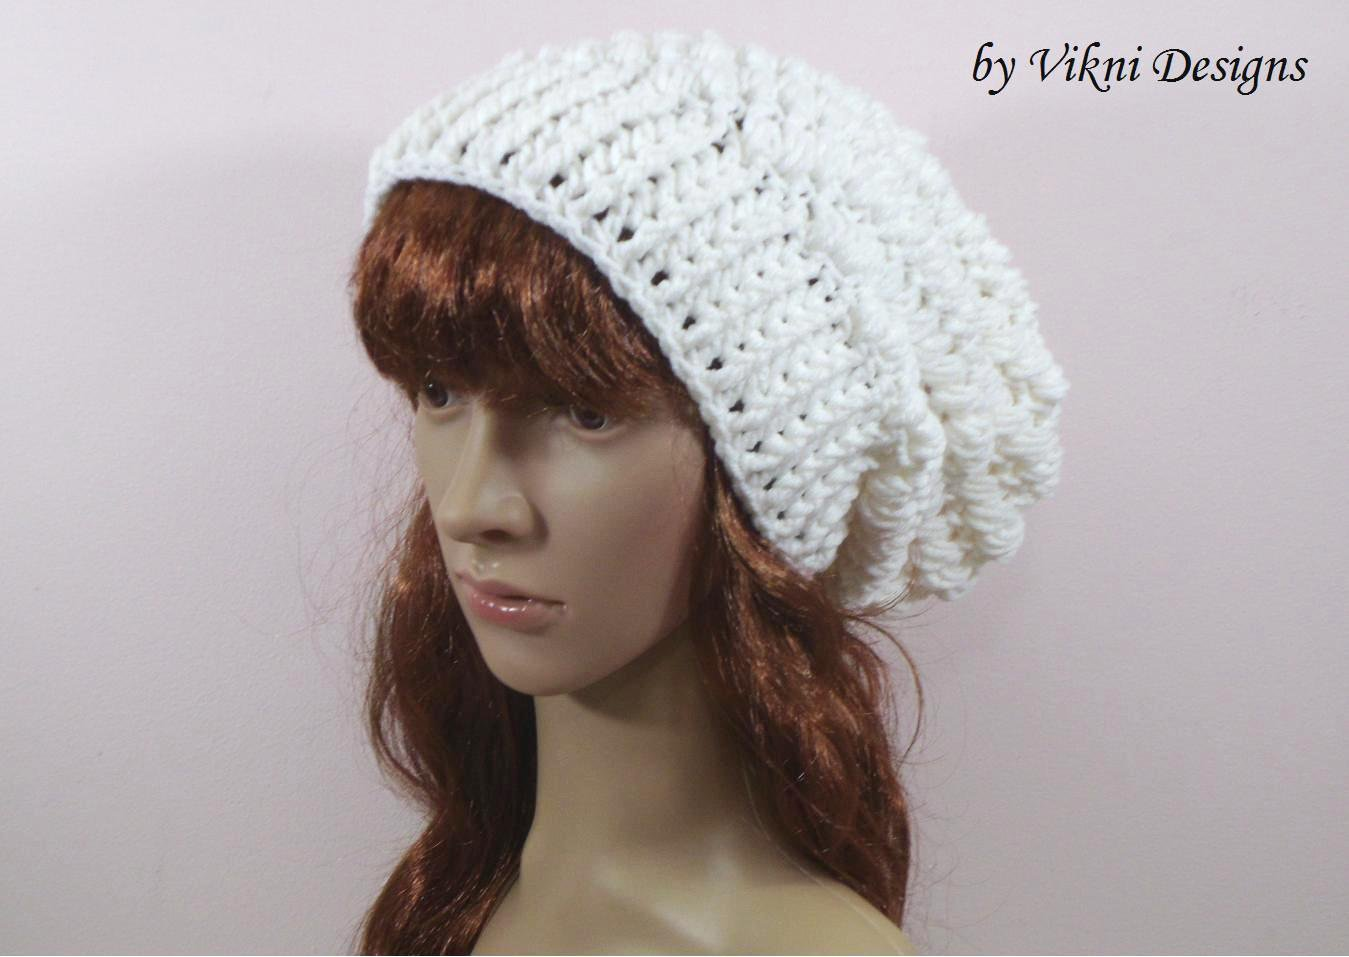 Crochet Slouchy Crochet Hat Beanie in White by Vikni Crochet Designs